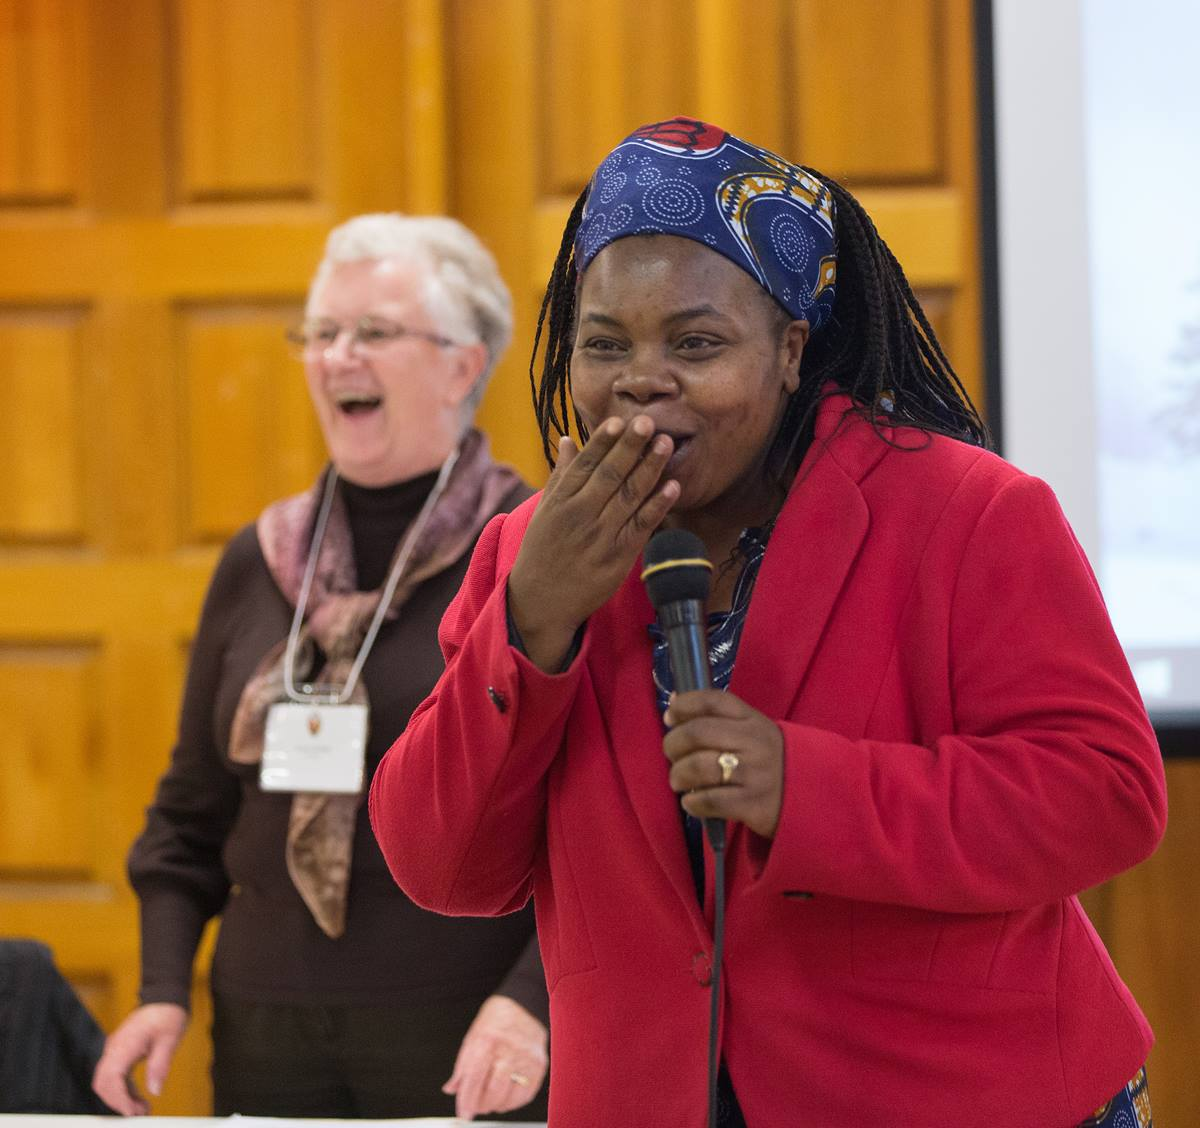 The Rev. Tazvionepi Nyarota (right) ululates to express her appreciation of a decision by  the Edmonton Presbytery, a governing body in the United Church of Canada, to support the Zimbabwe United Methodist Church in Canada as a mission of the United Church. The meeting was held at McDougall United Church in Edmonton, Alberta. Photo by Mike DuBose, UMNS.